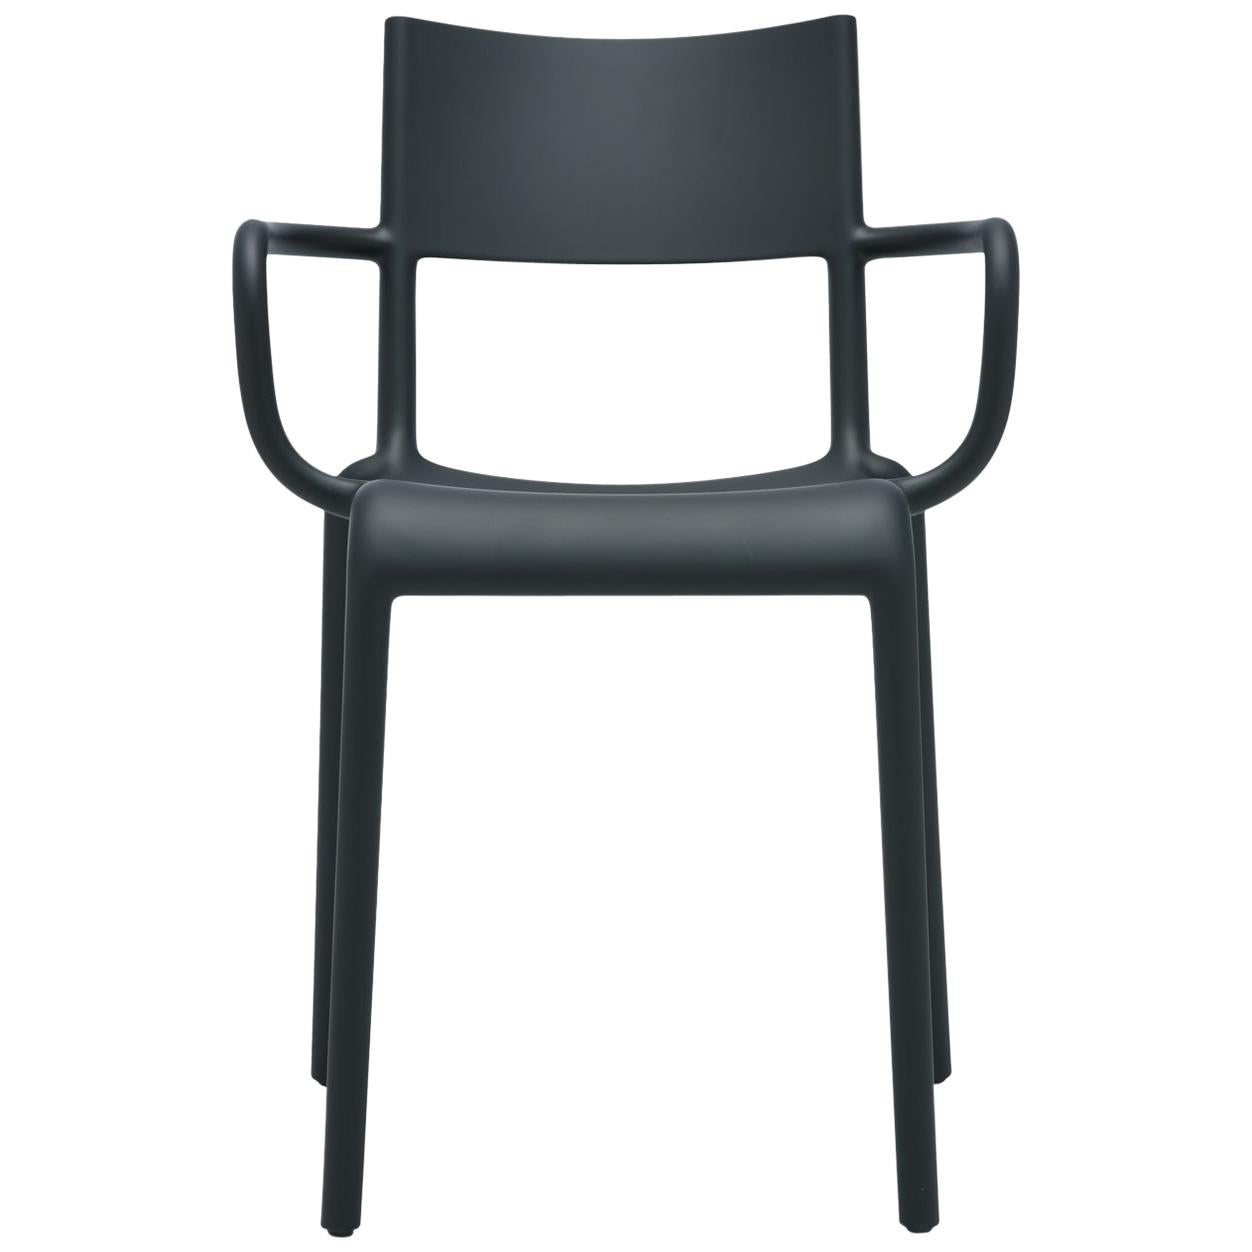 Set of 2 Kartell Generic a Chairs in Black by Philippe Starck